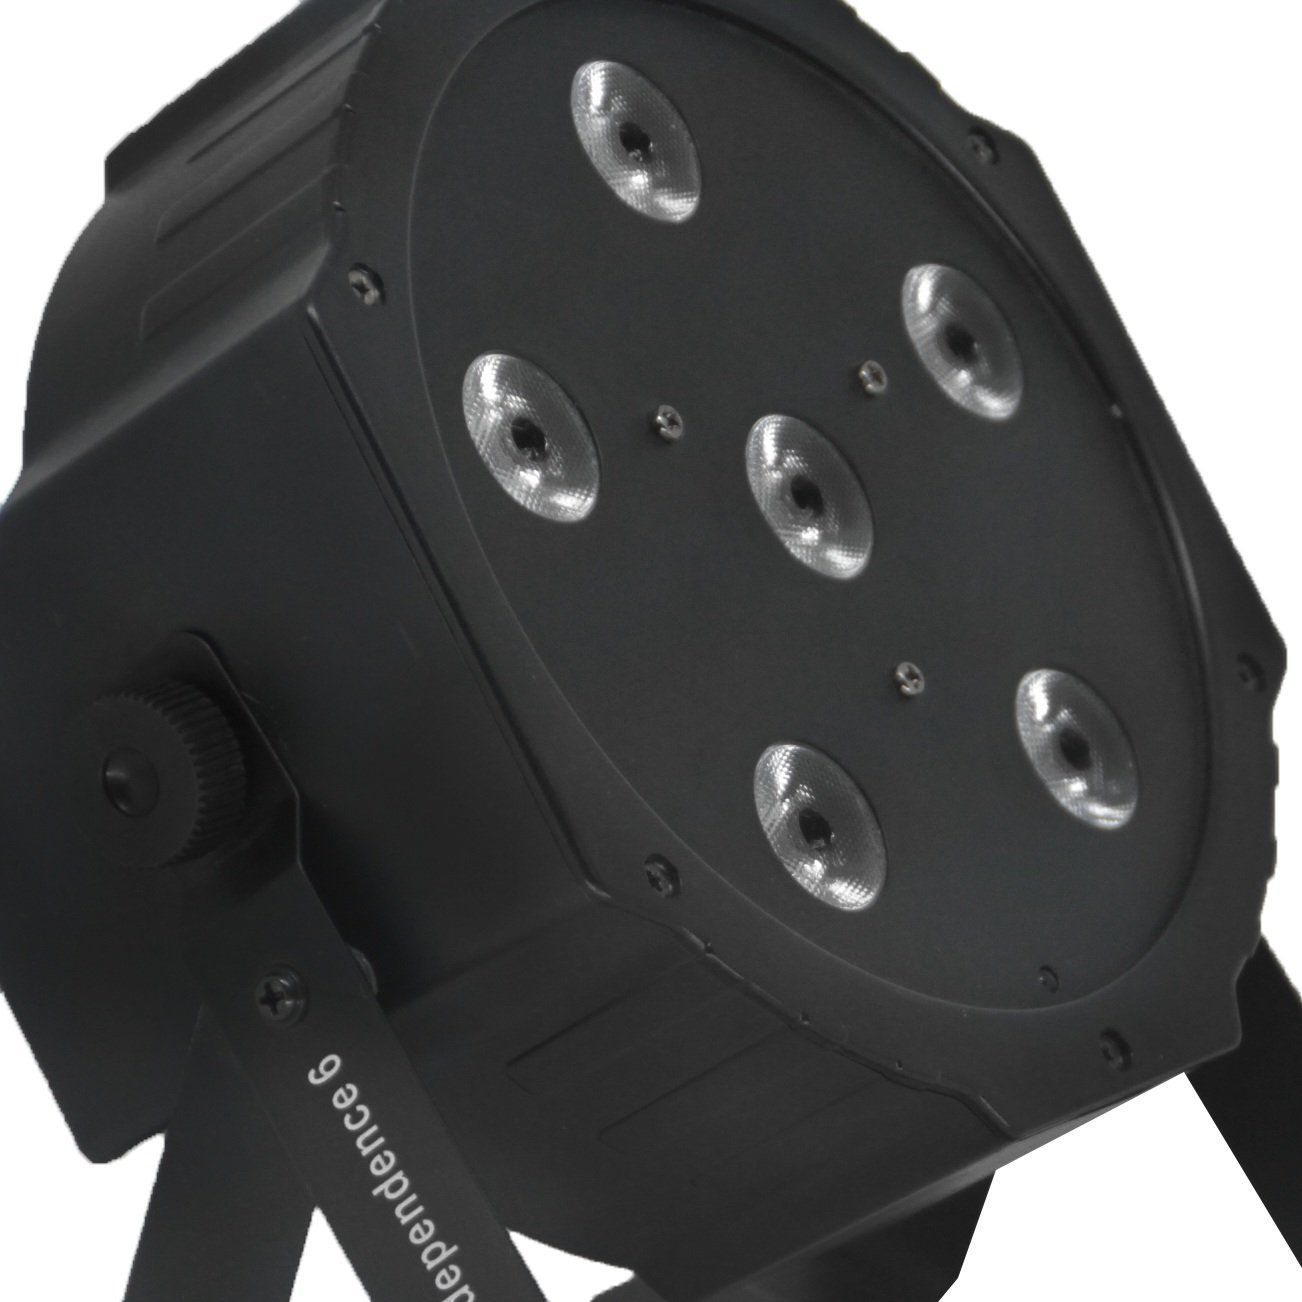 Independence 6 - PAR LED 6 X 10W - 4 EM 1 - PLS